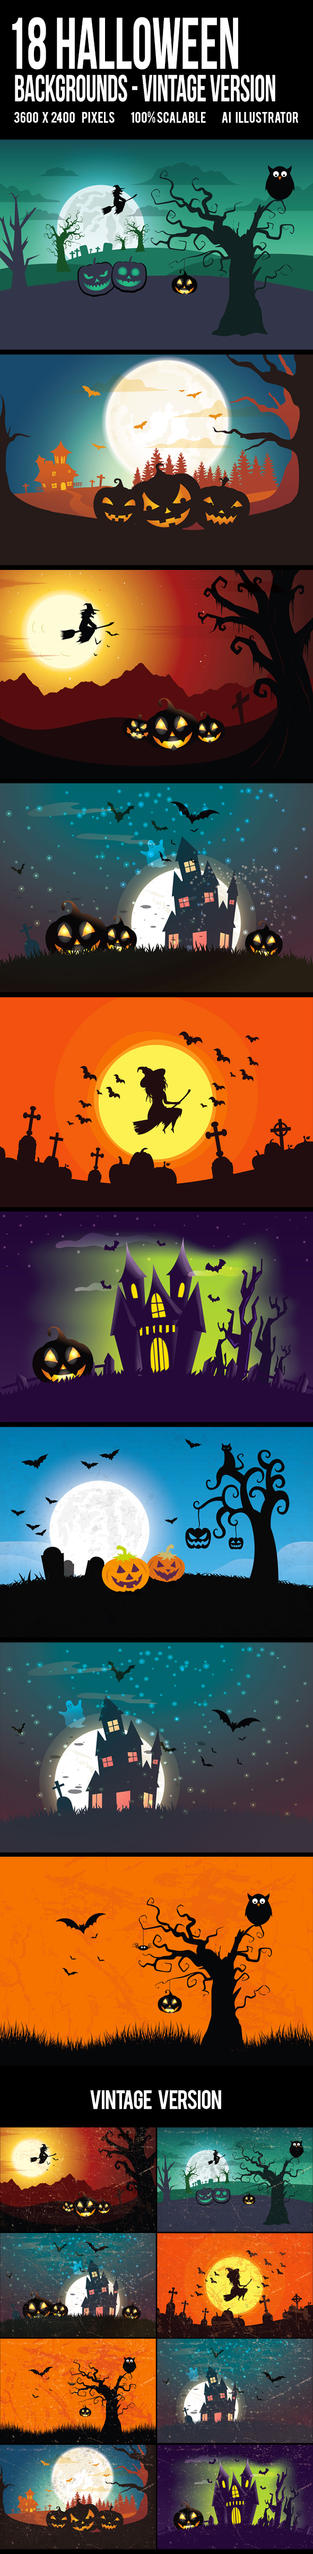 18 Halloween Backgrounds/Cards Landscape by another-graphic